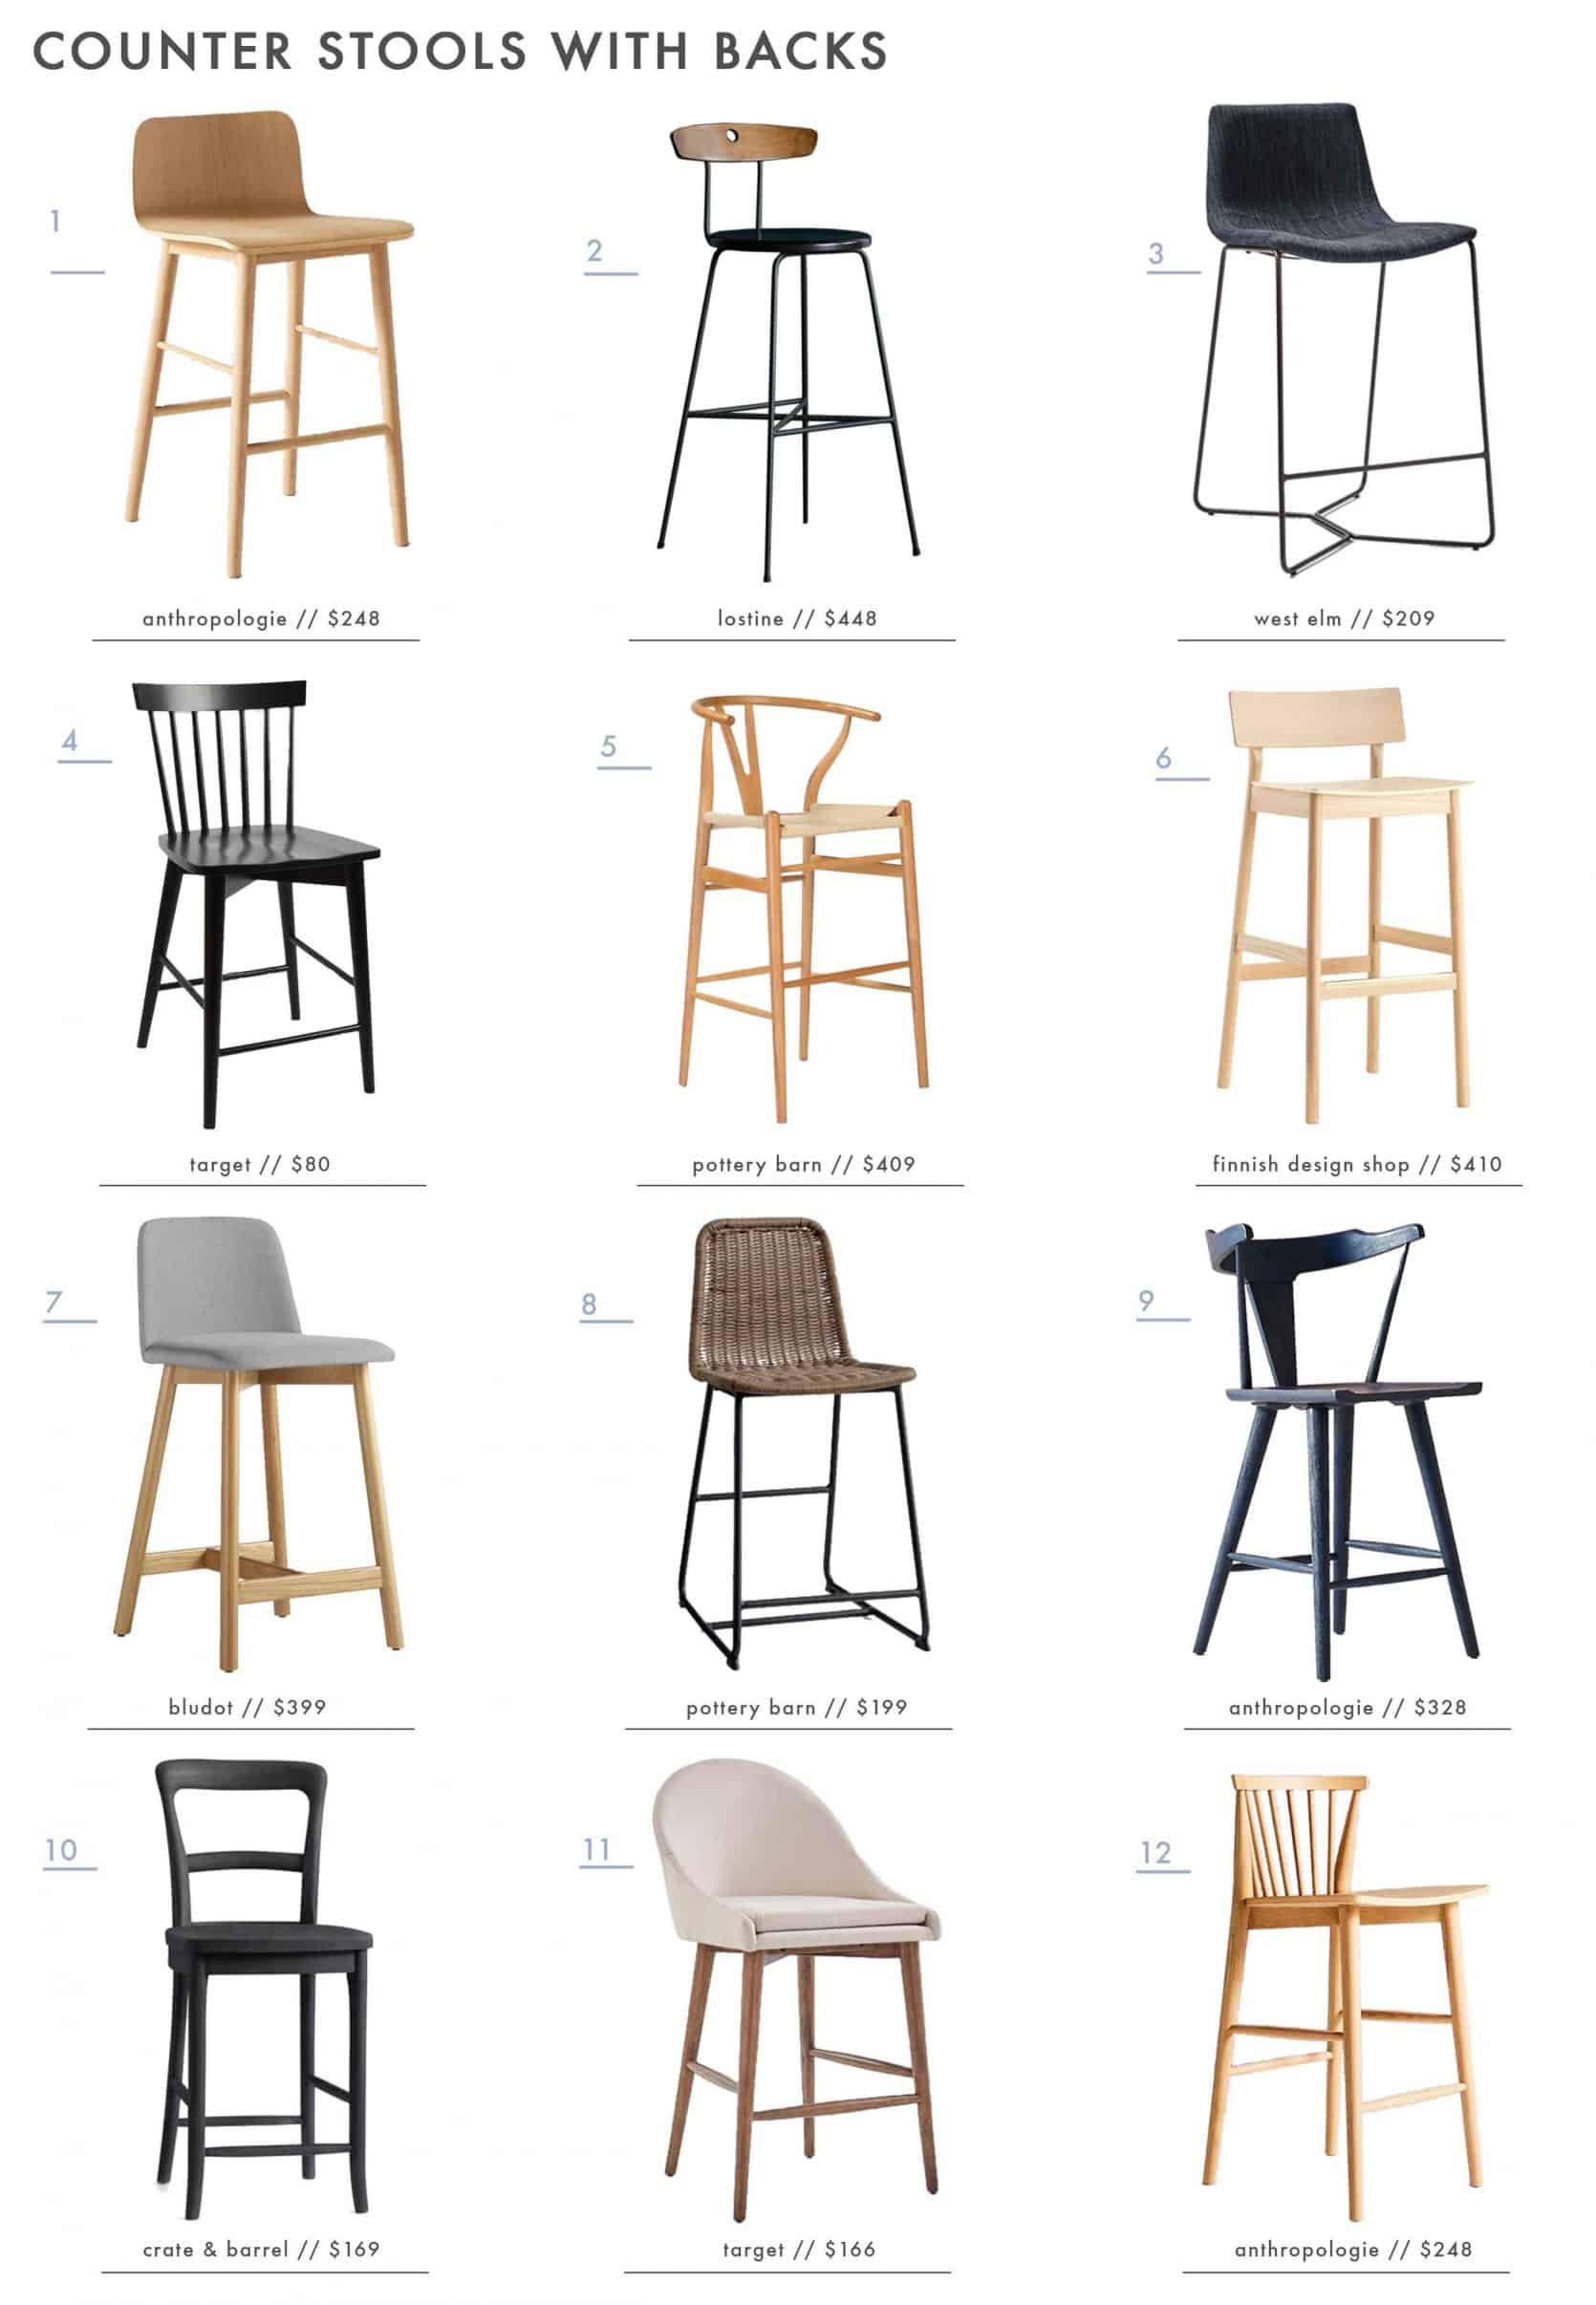 All The Counter Stools I Considered For the Mountain House Kitchen